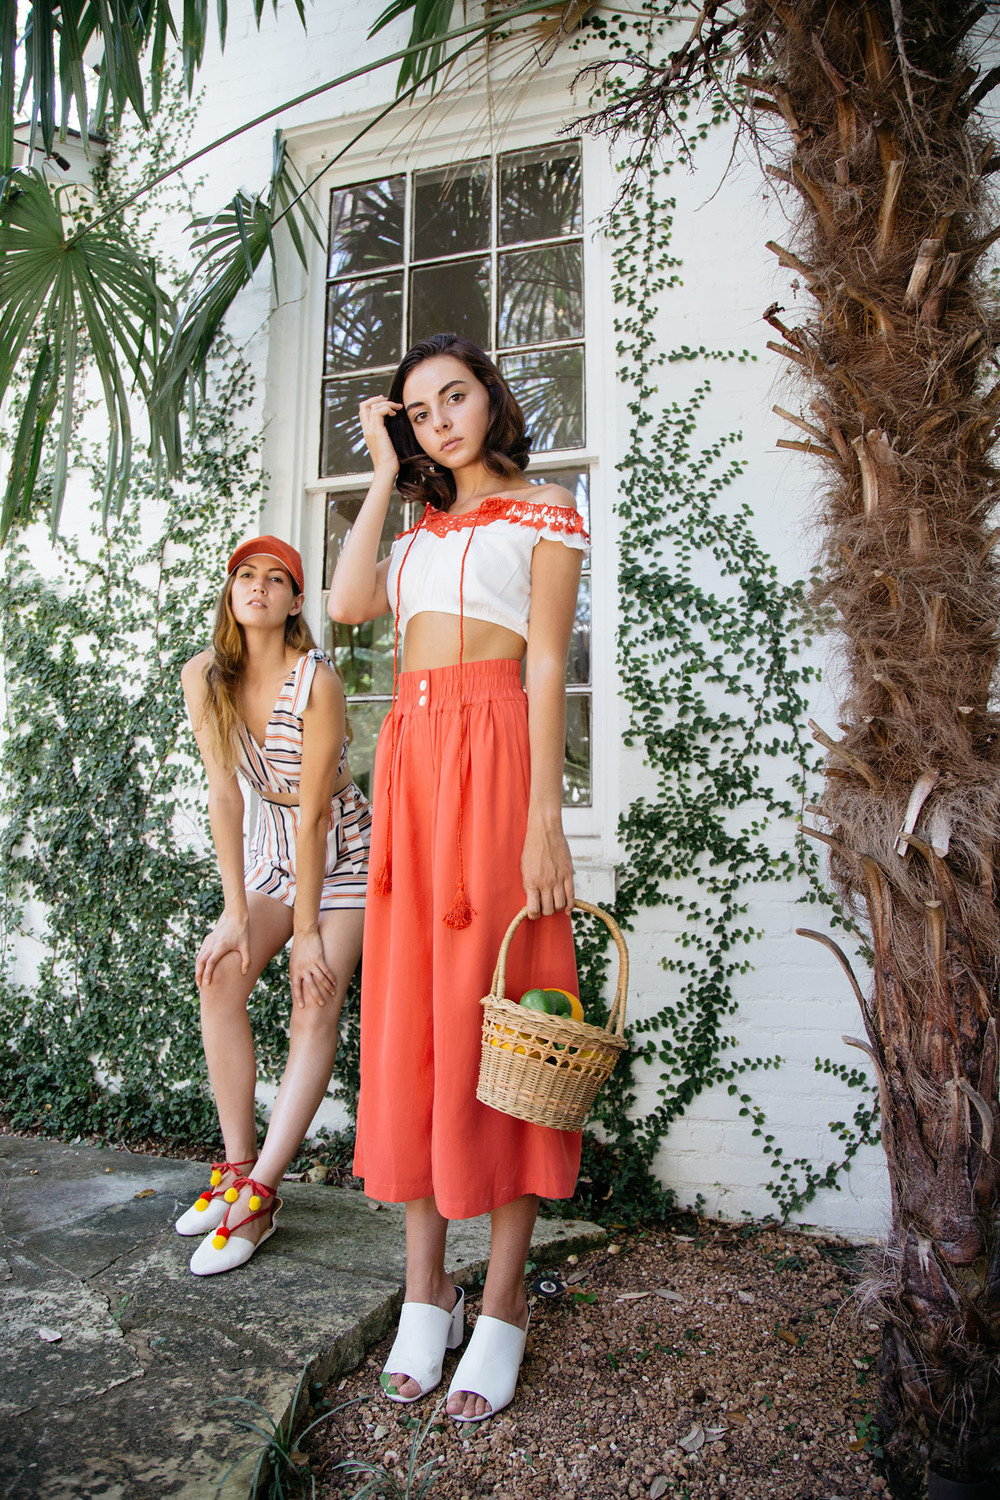 Beehive_The_Rebel_Stylist_Summer_lookbook_07_resize.jpg